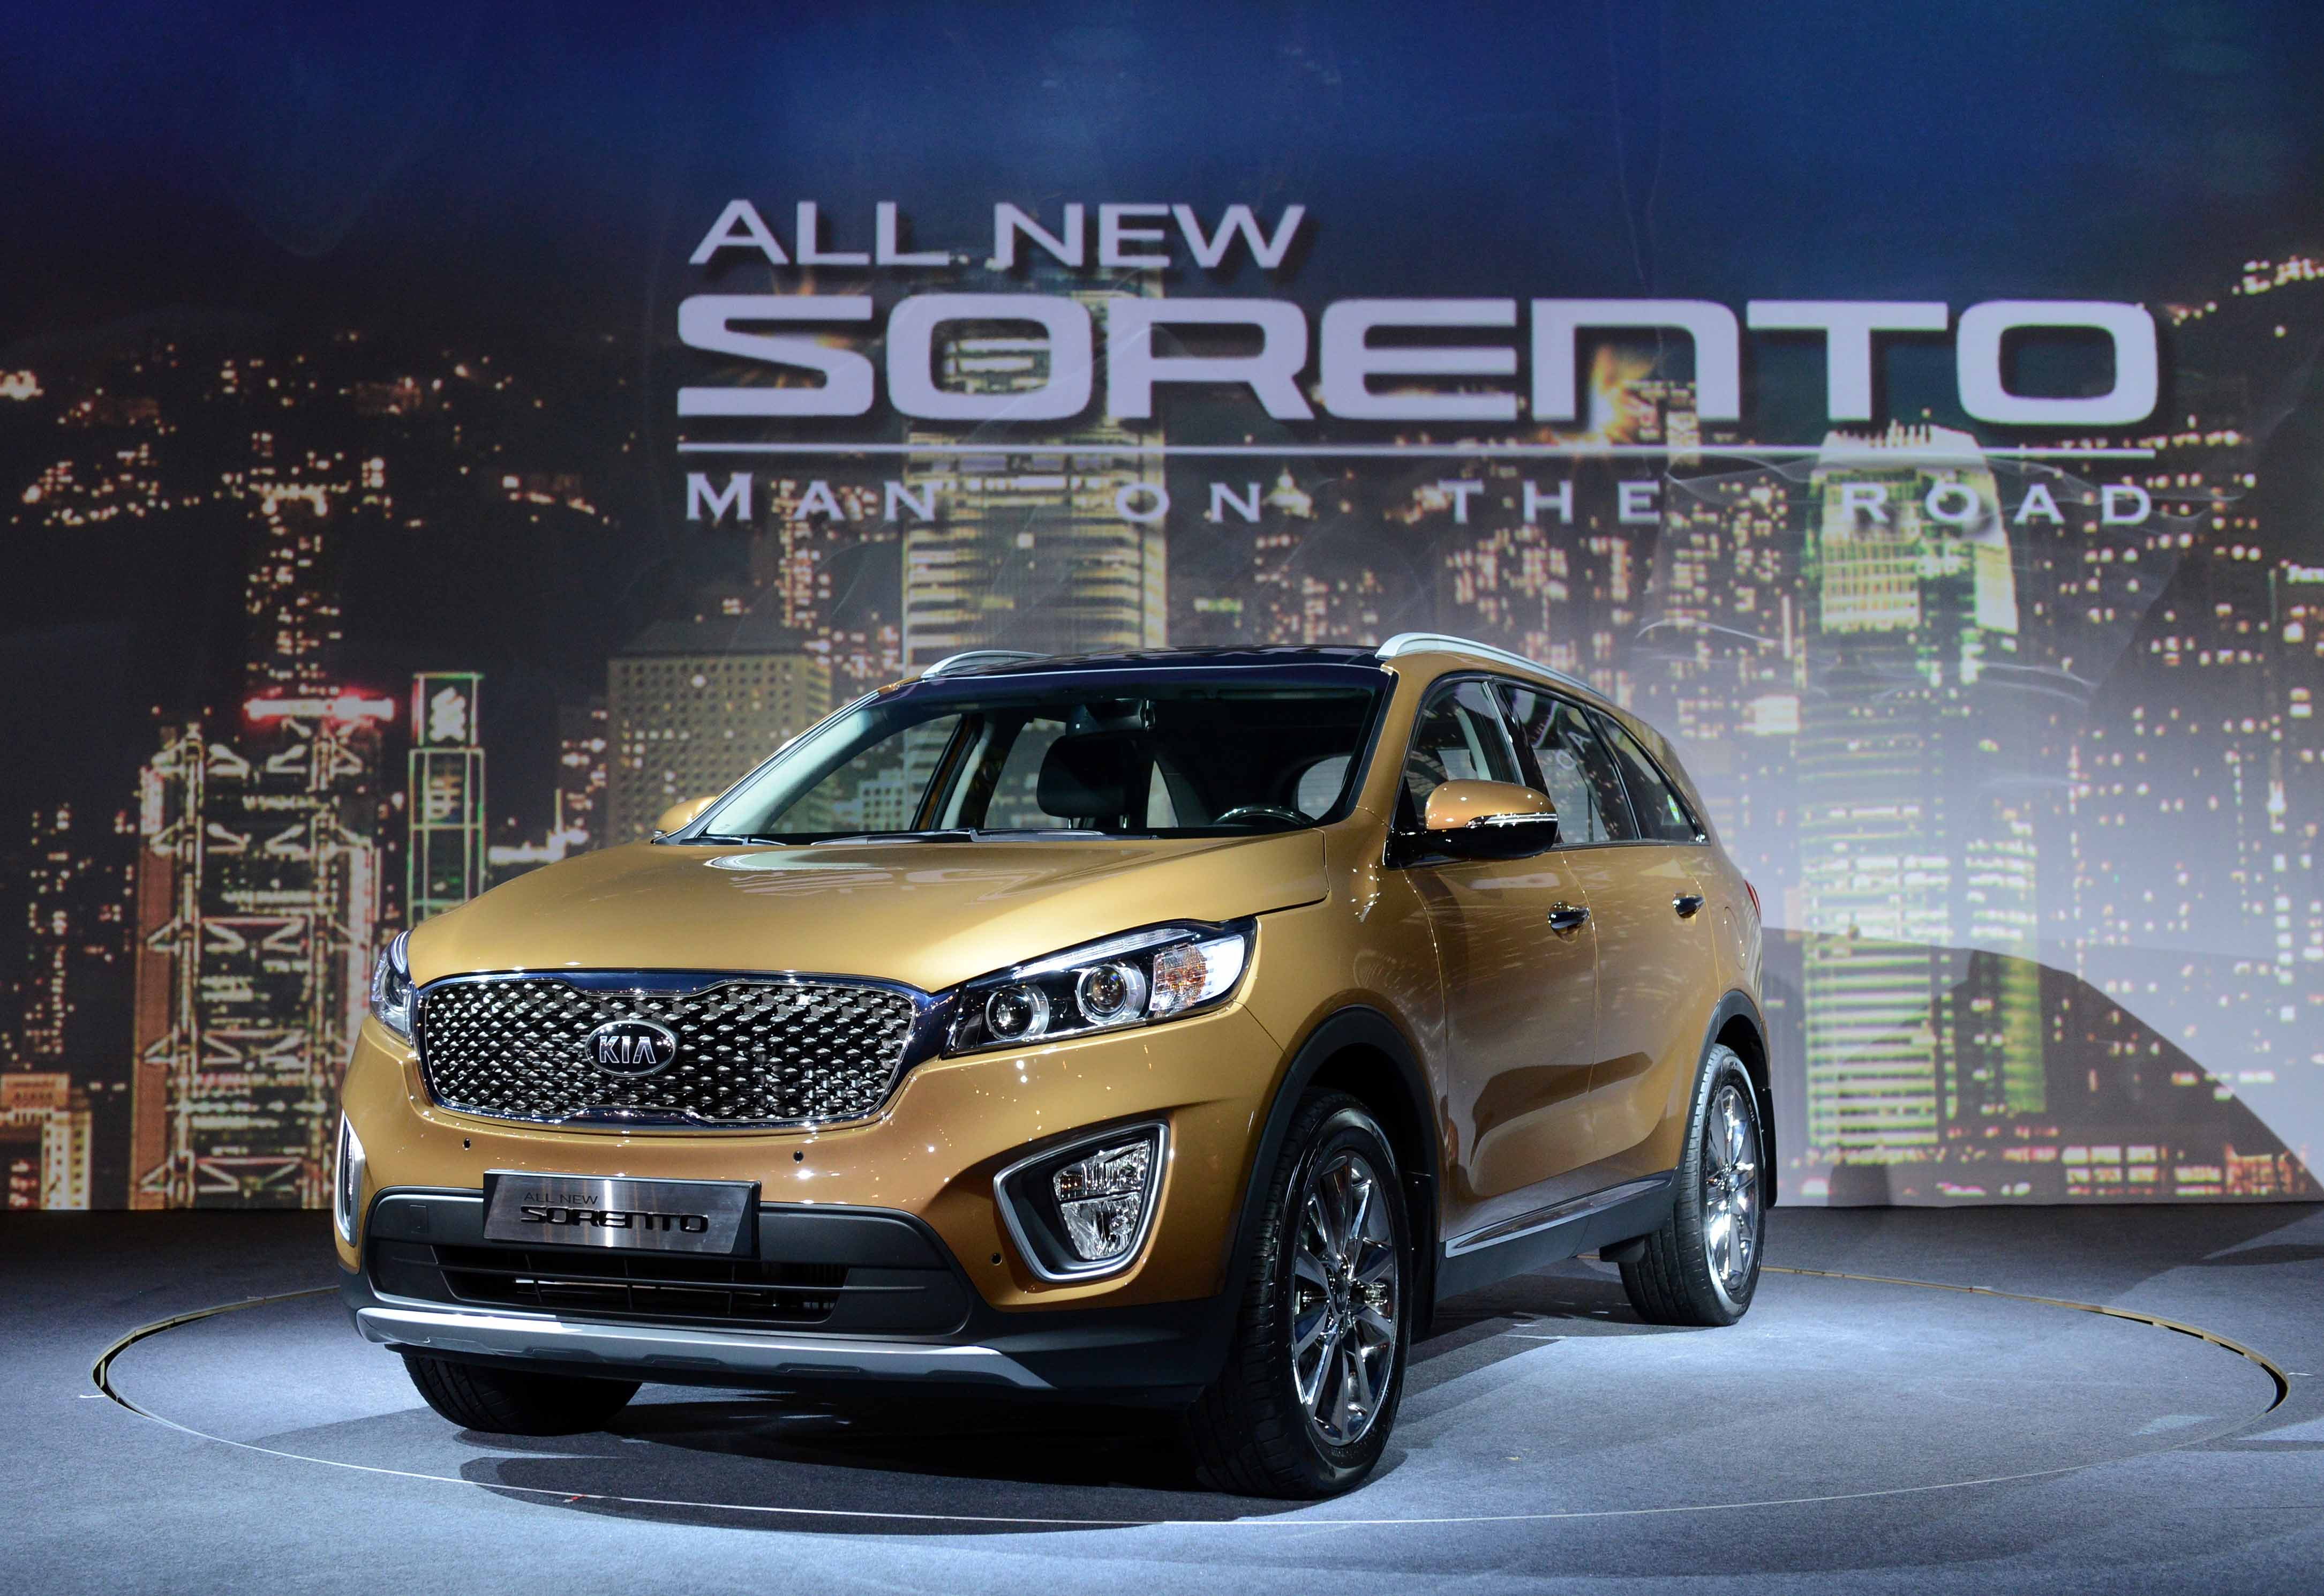 Kia Officially Revealed Today the All-New Sorento in South Korea (All Information, Prices & Pictures)